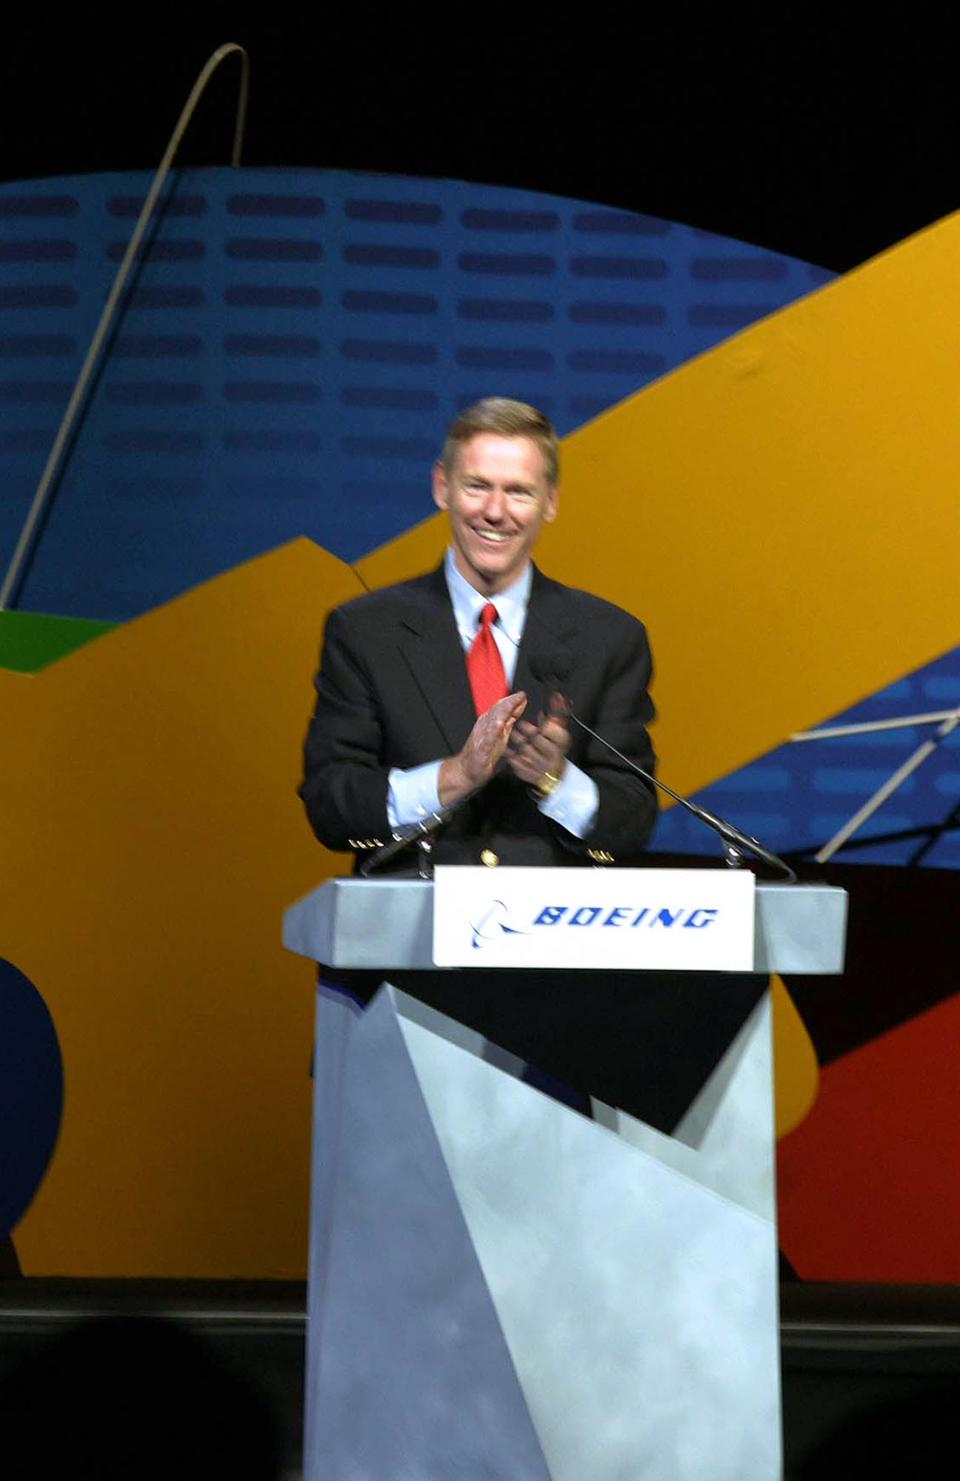 If You Think Leadership Doesn't Matter, Look At Boeing